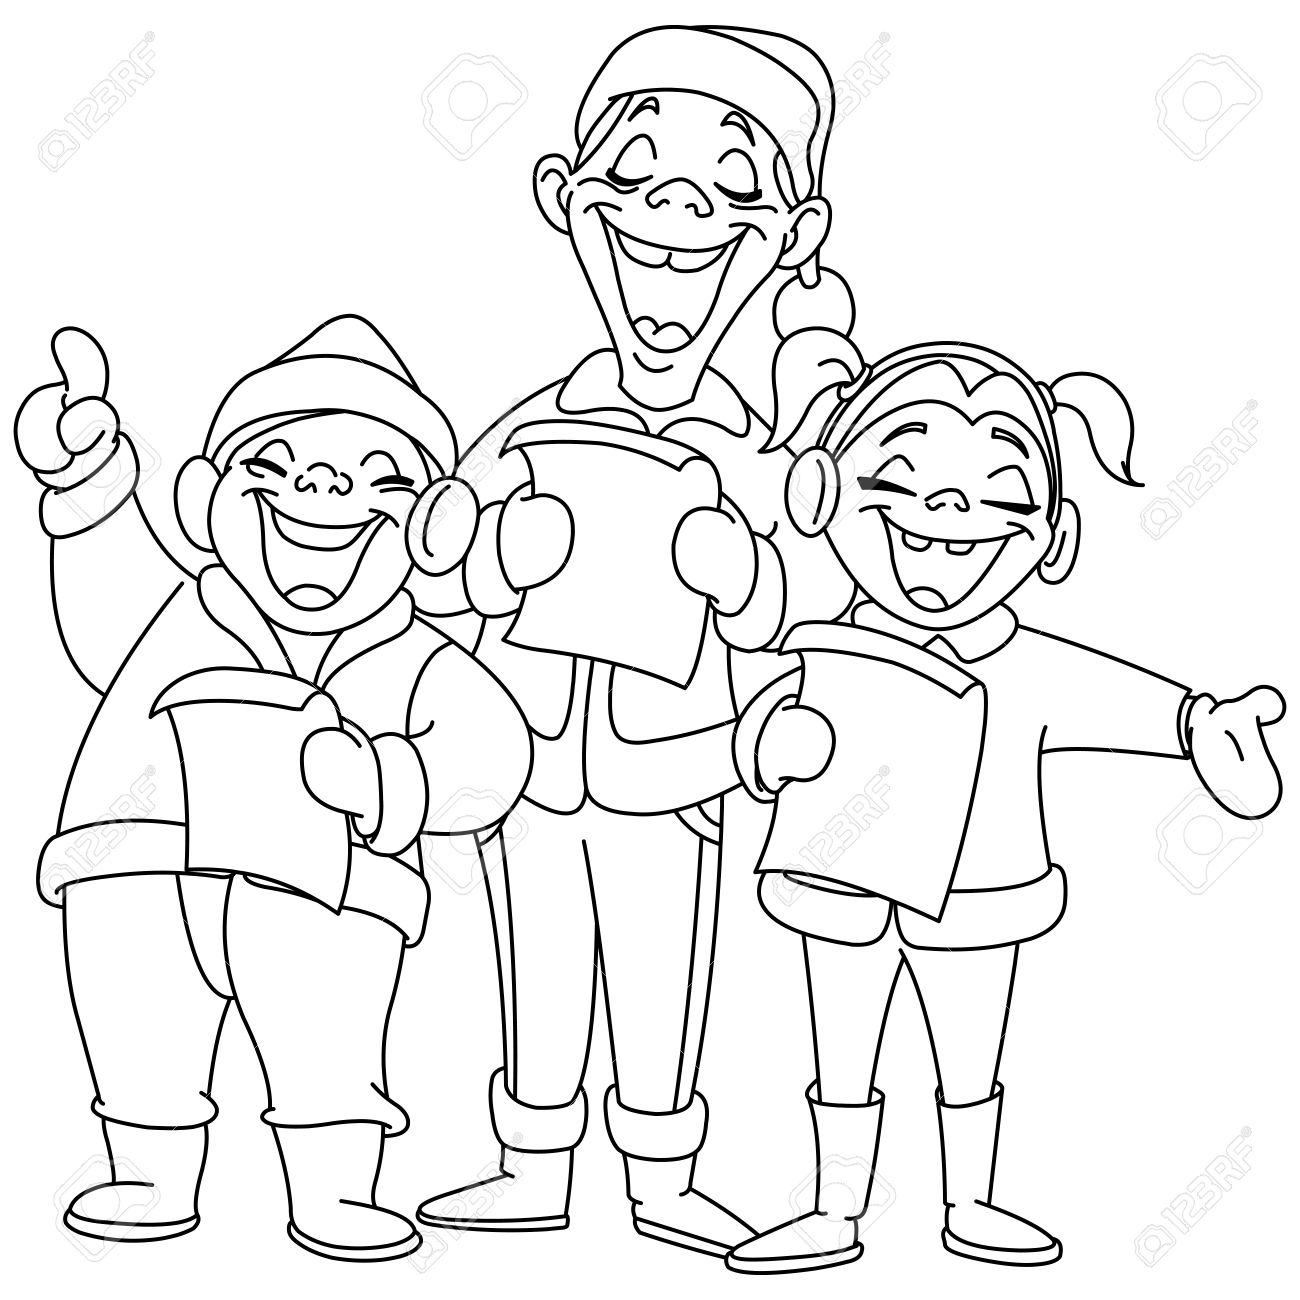 Outlined Christmas Carolers Vector Illustration Coloring Page Royalty Free Cliparts Vectors And Stock Illustration Image 33549022